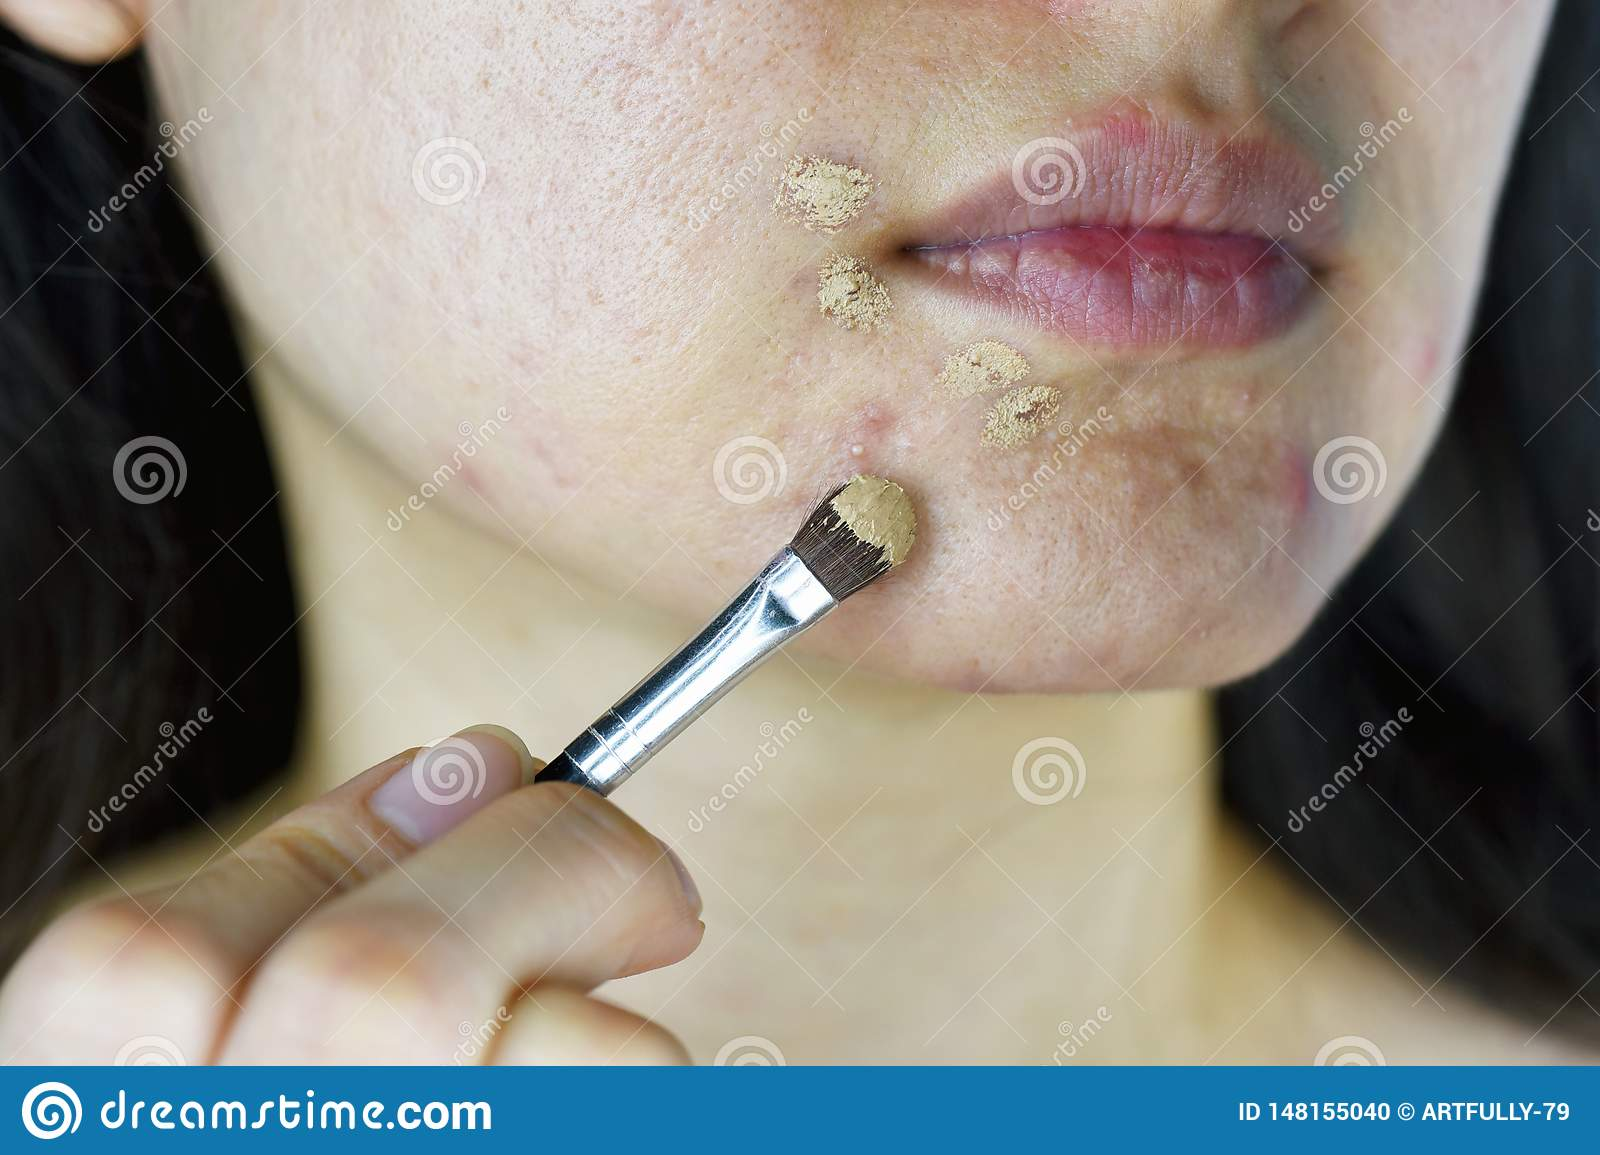 Cosmetics acne, Asian woman applying concealer makeup to hide acne facial skin problem.